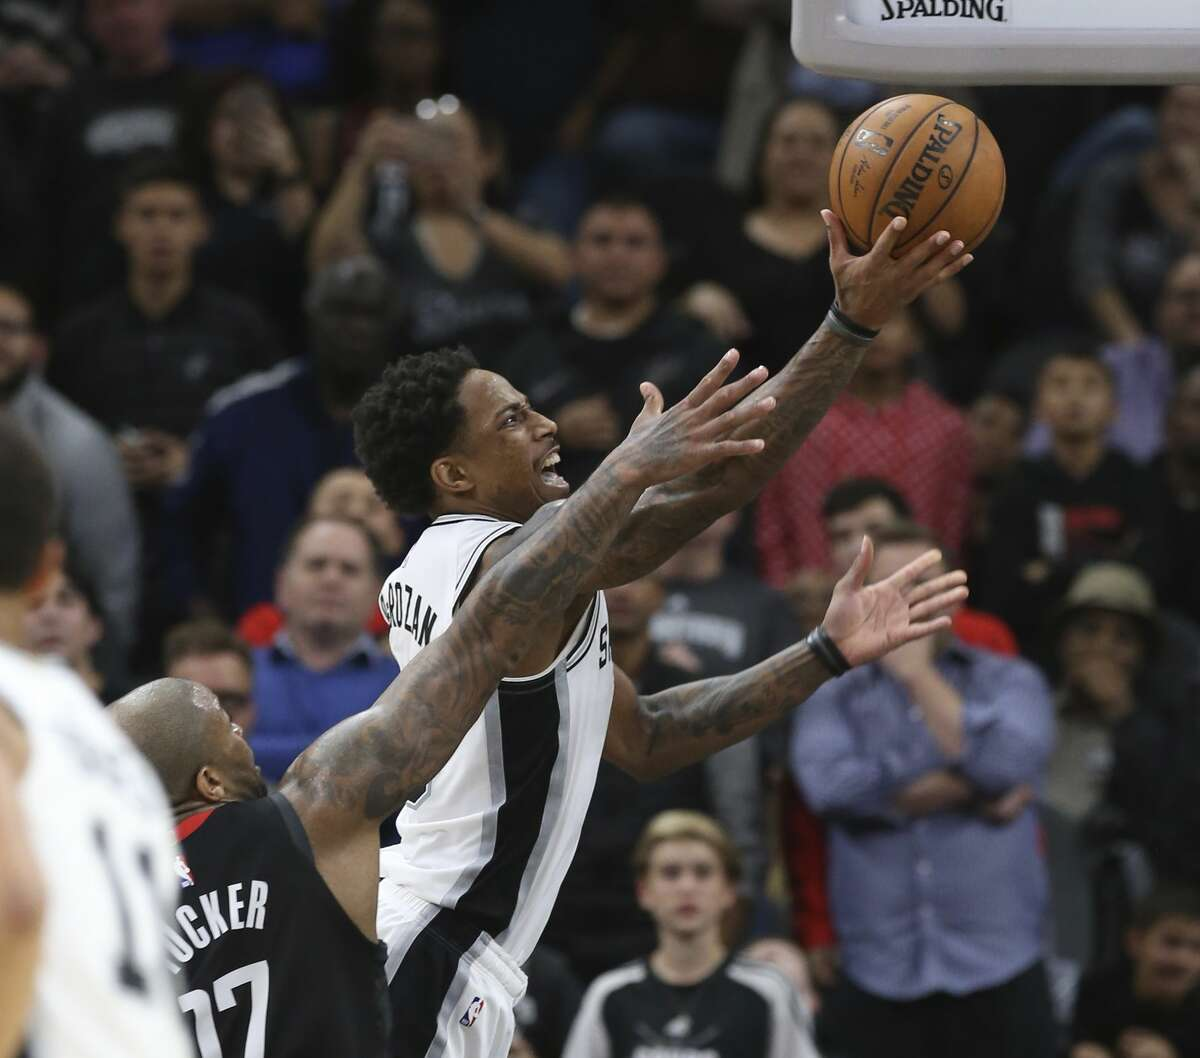 Spurs' DeMar DeRozan (10) goes strong to the basket against Houston Rockets' PJ Tucker (17) during their game at the AT&T Center on Tuesday, Dec. 3, 2019. Spurs rally from 22 points to defeat the Rockets, 135-133, in double overtime.